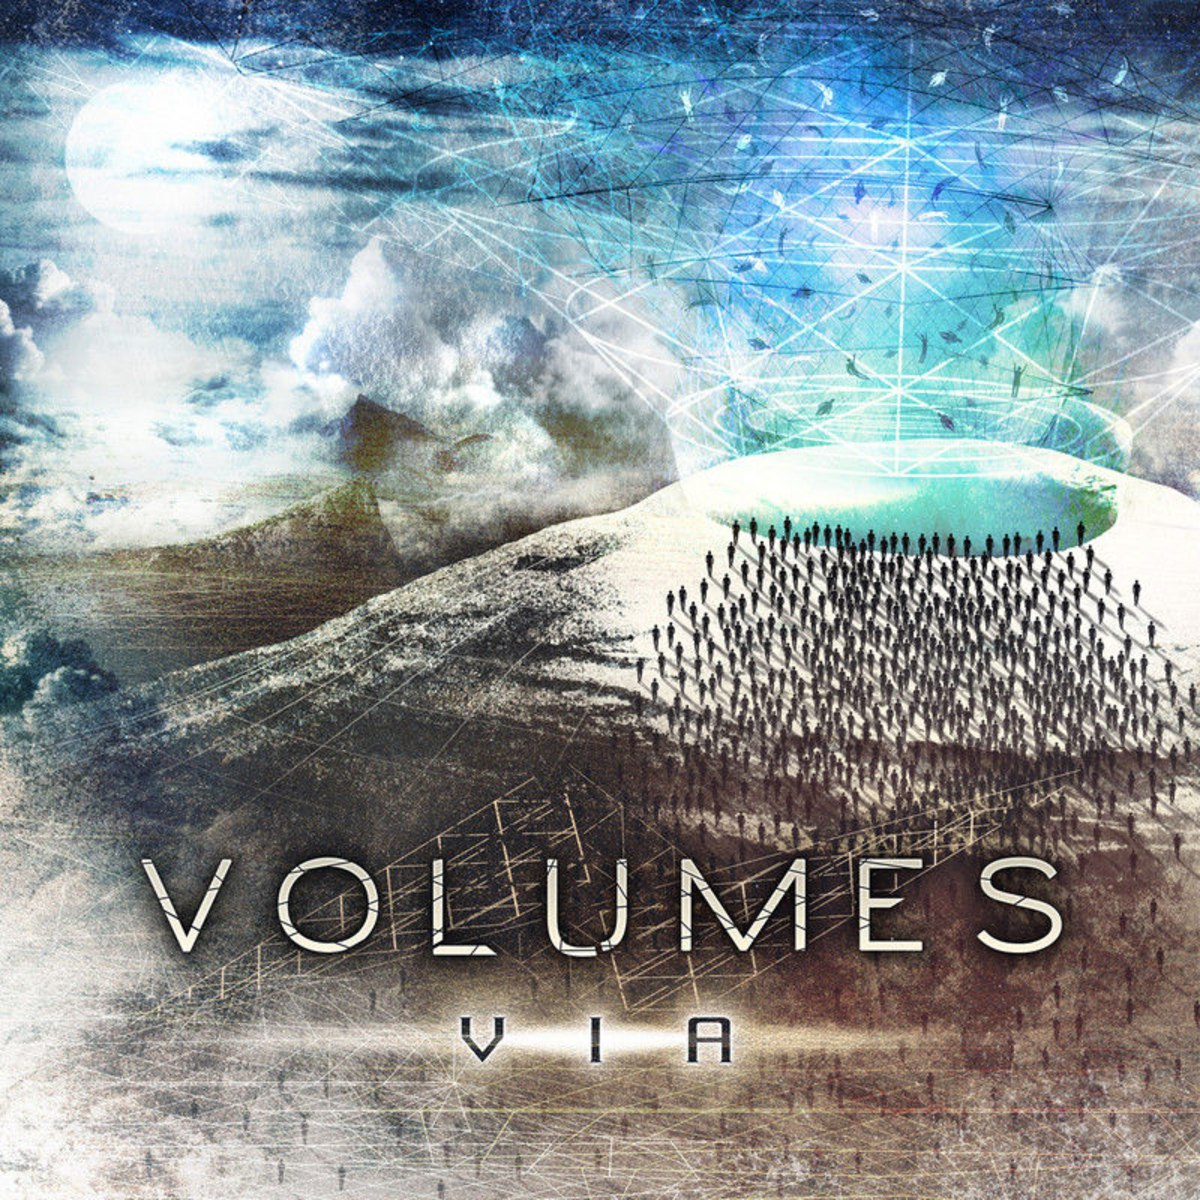 Volumes - Via (2011)